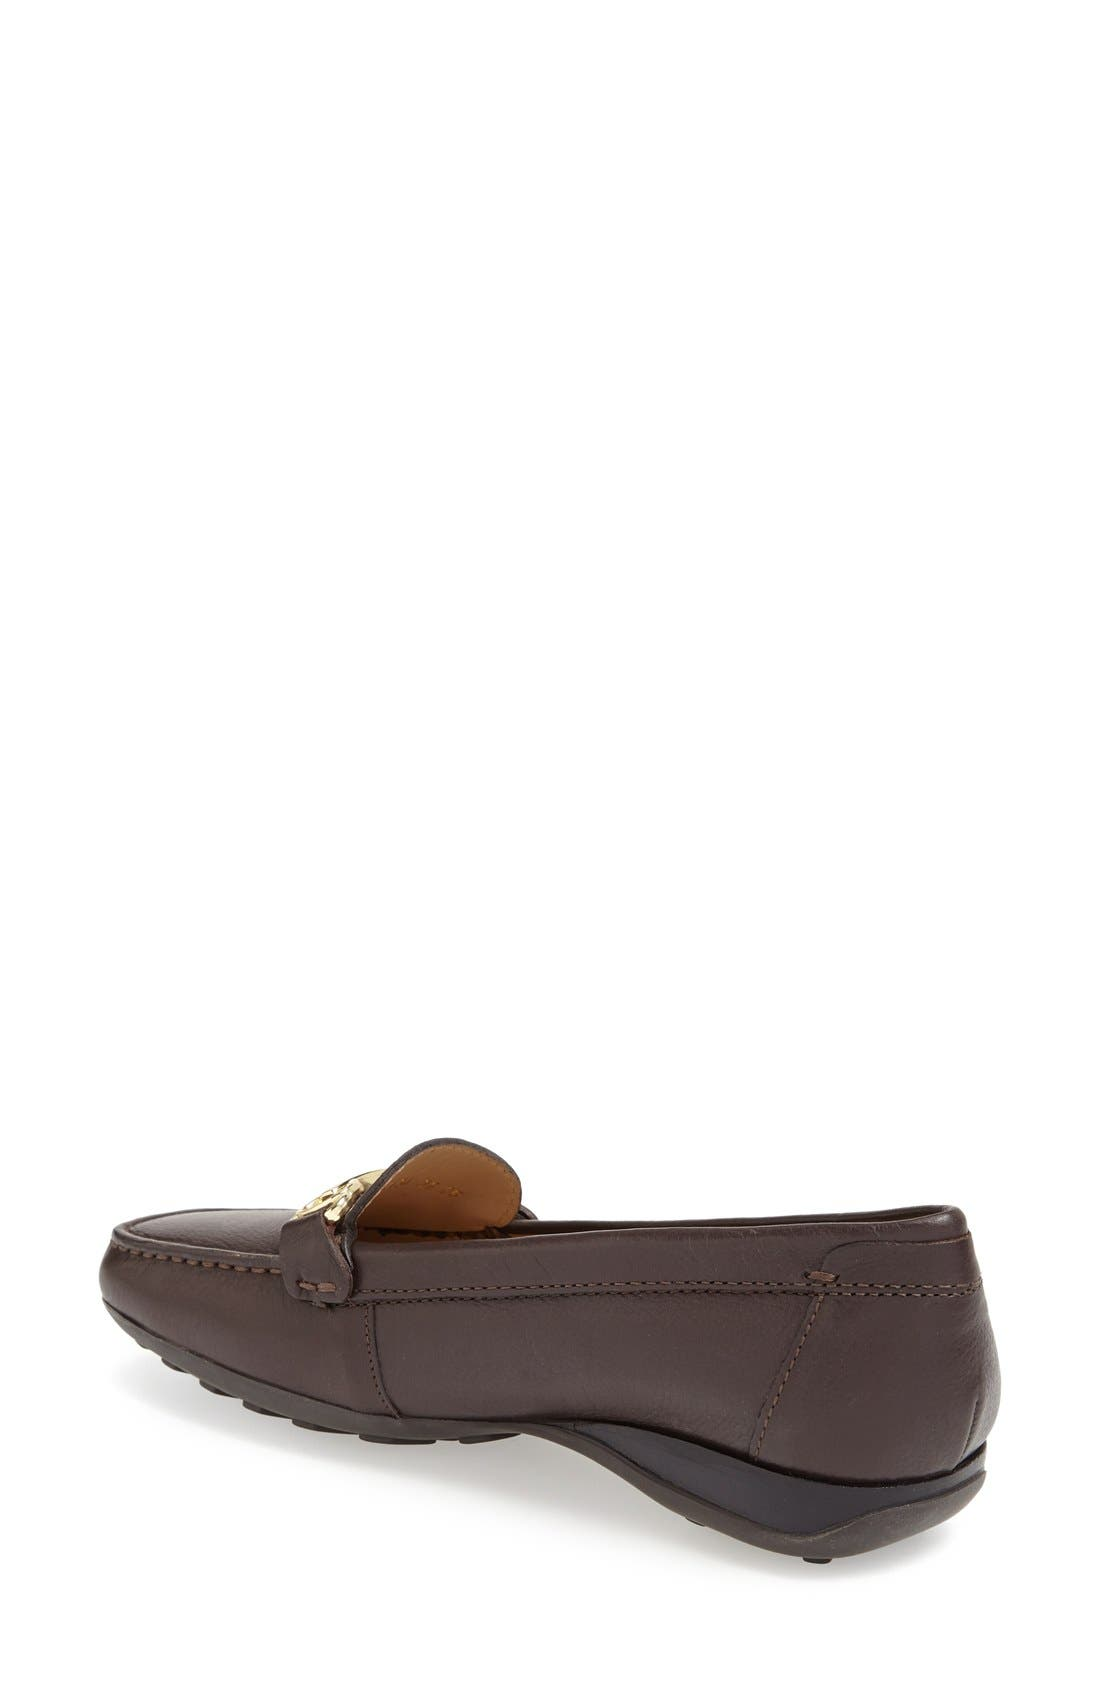 Euro 67 Loafer,                             Alternate thumbnail 13, color,